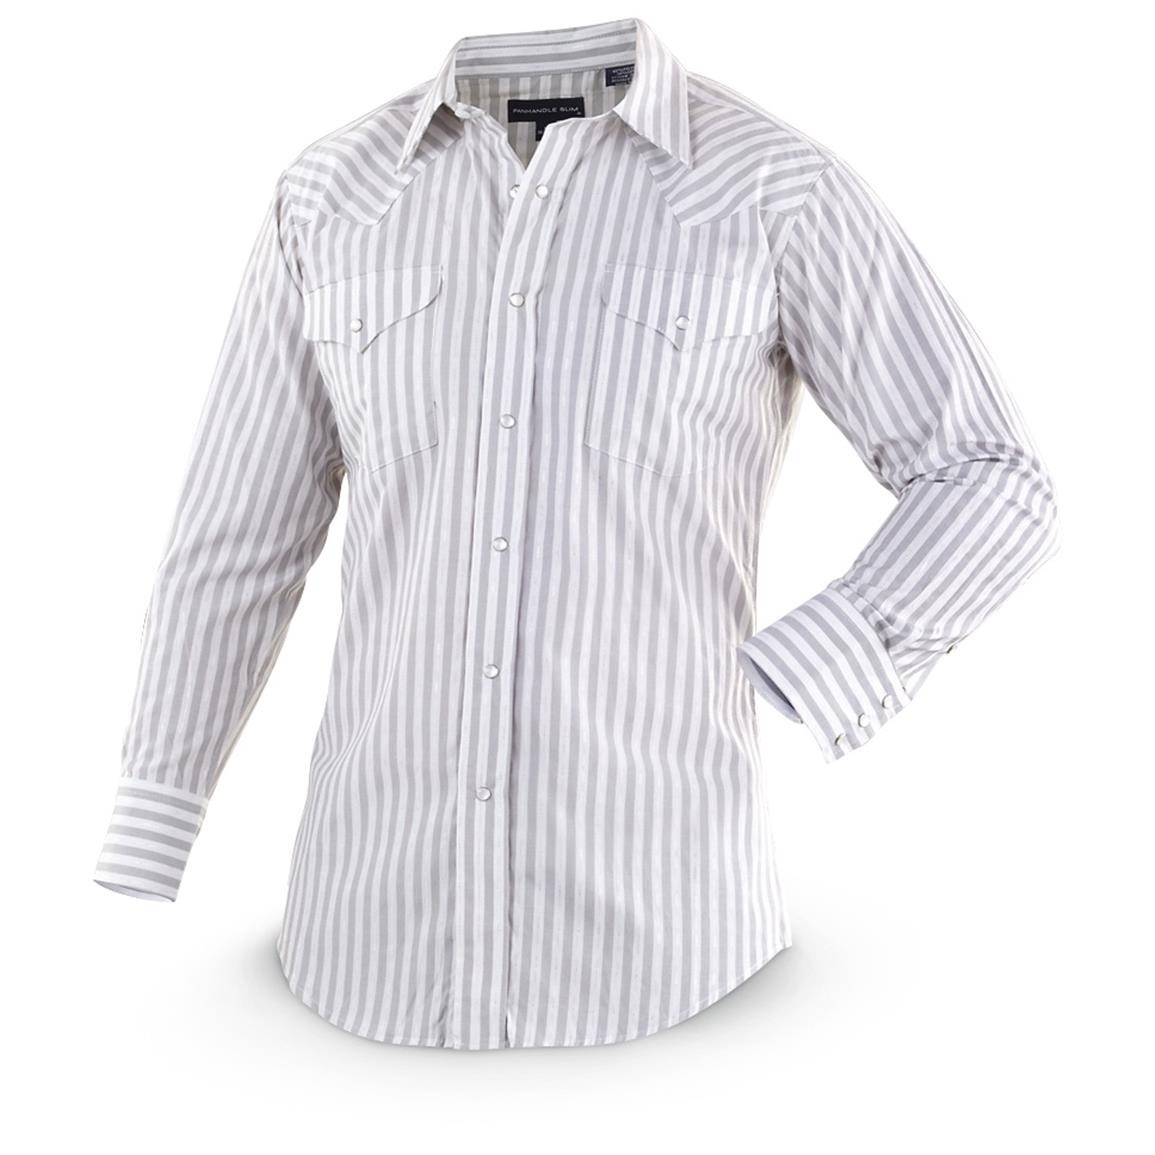 2-Pk. of Panhandle Slim® Metallic-striped Long-sleeved Western Shirts, 1 Gray